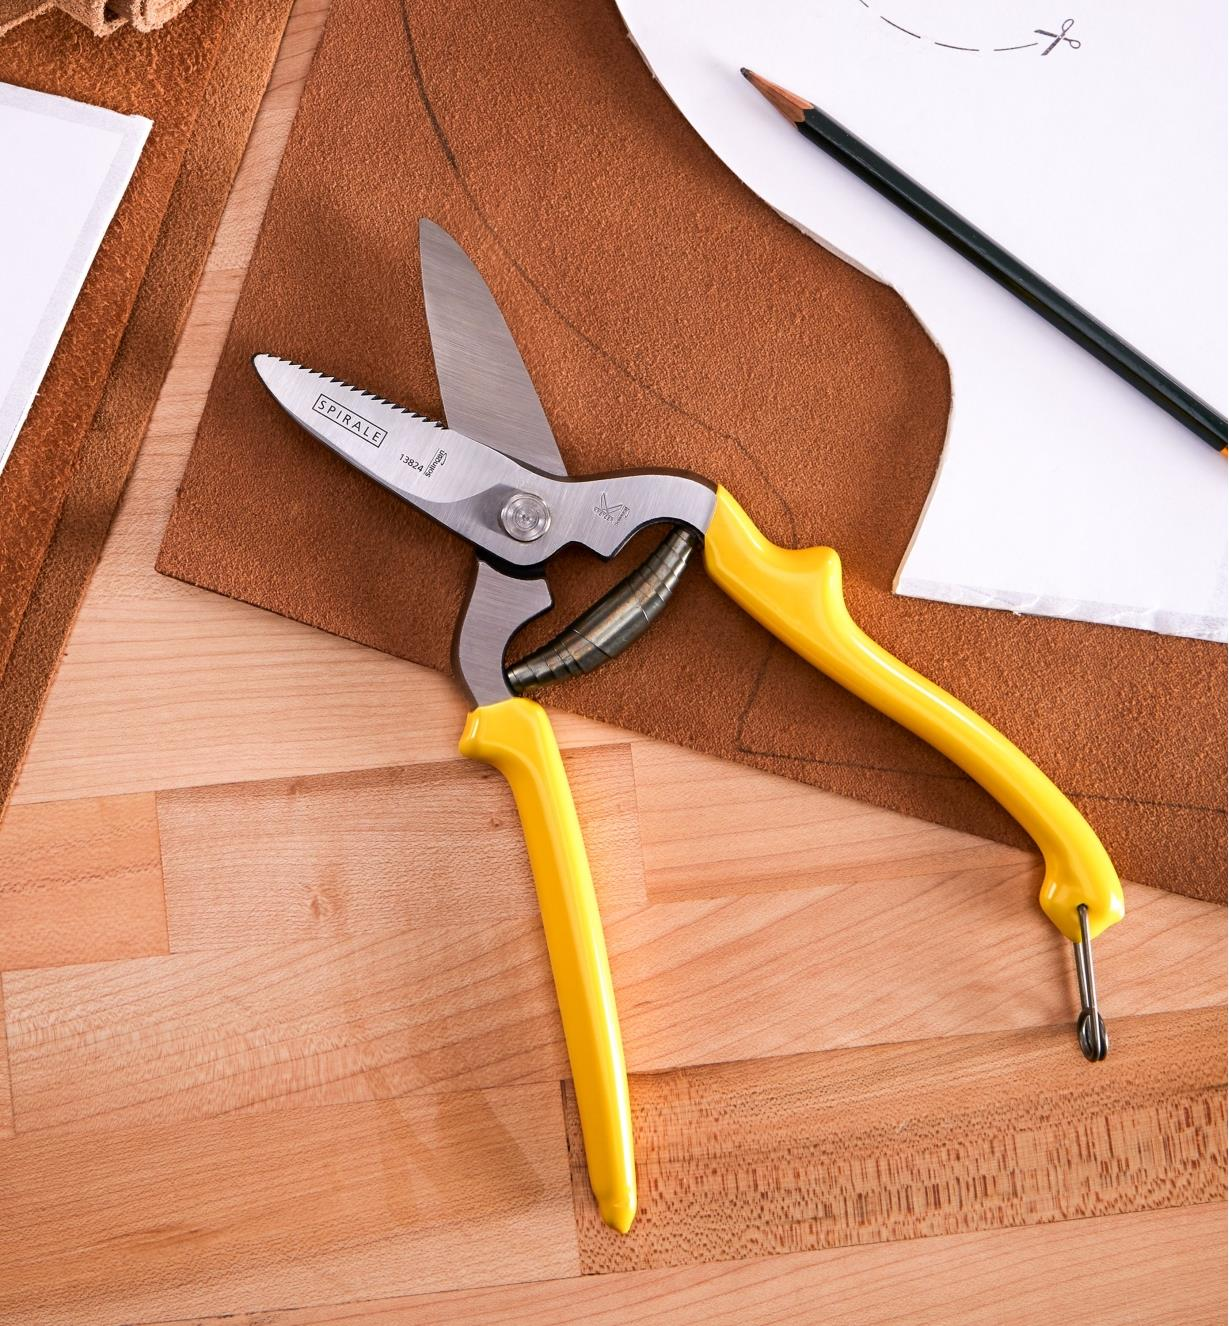 Leather shears lying on a table with a paper pattern and a piece of leather marked for cutting